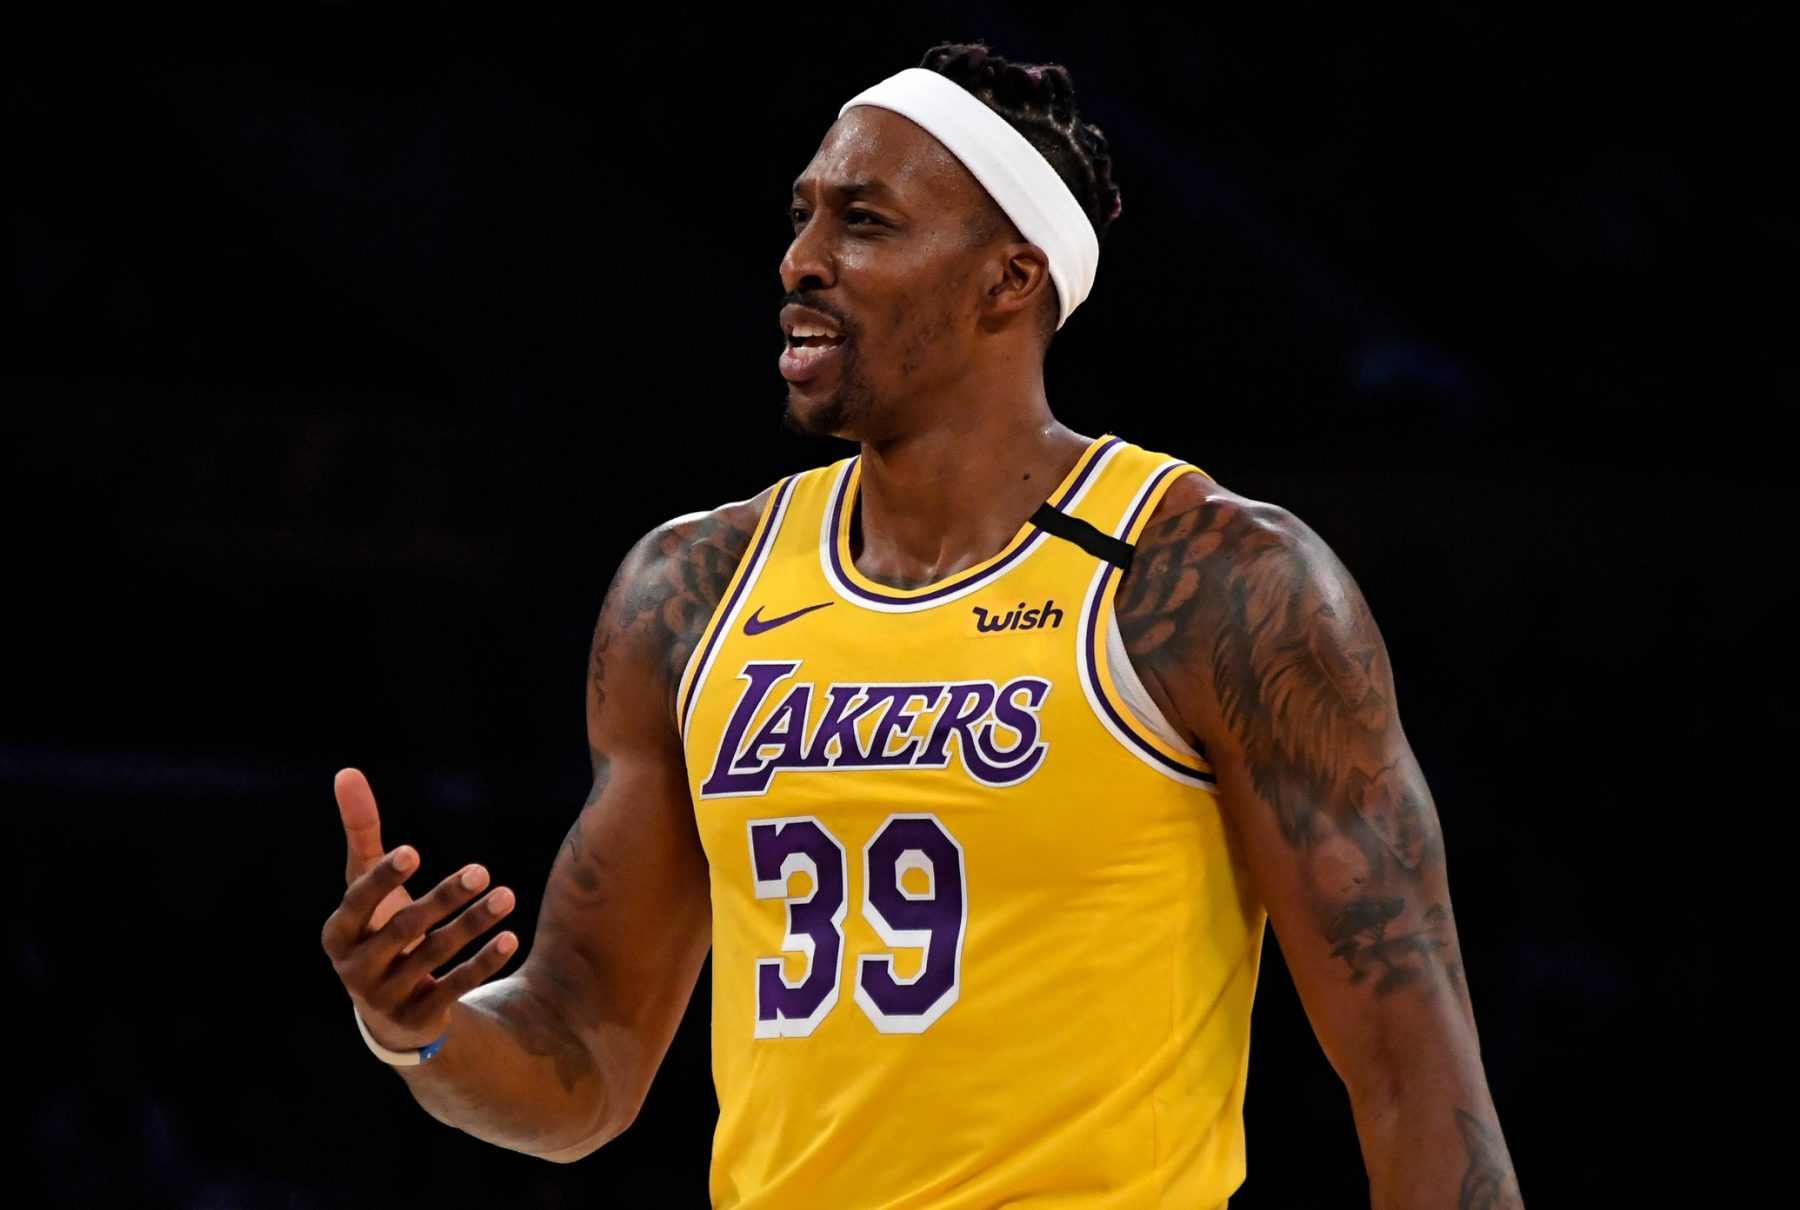 Dwight Howard Warned For Not Wearing Mask Following Tip To Hotline